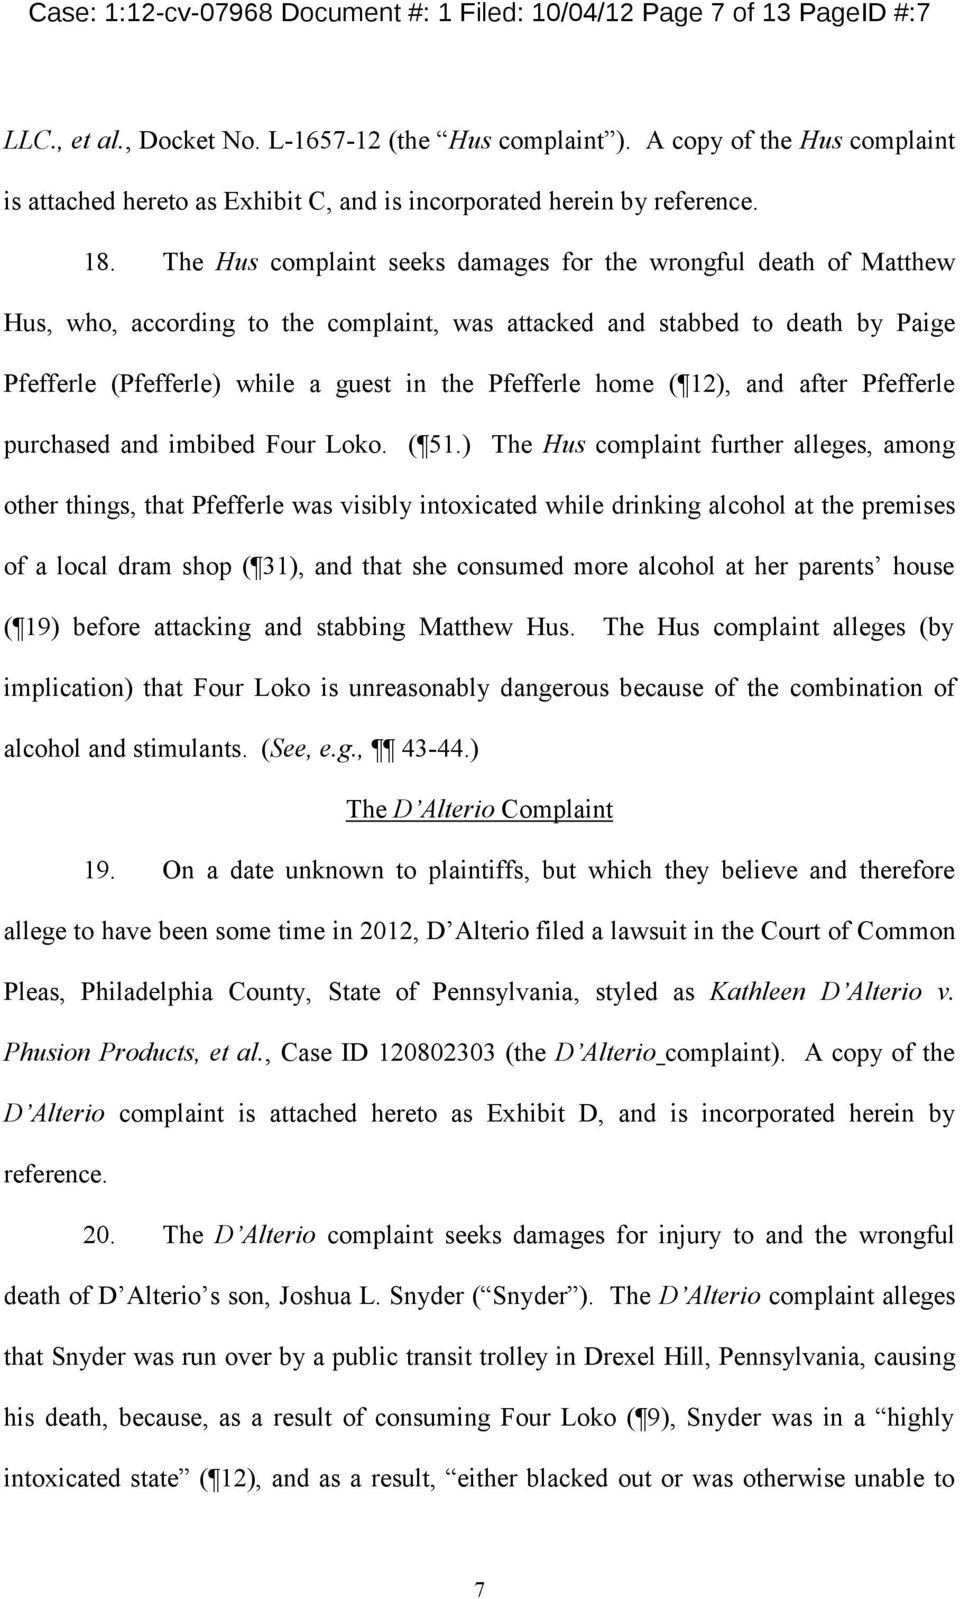 The Hus complaint seeks damages for the wrongful death of Matthew Hus, who, according to the complaint, was attacked and stabbed to death by Paige Pfefferle (Pfefferle while a guest in the Pfefferle